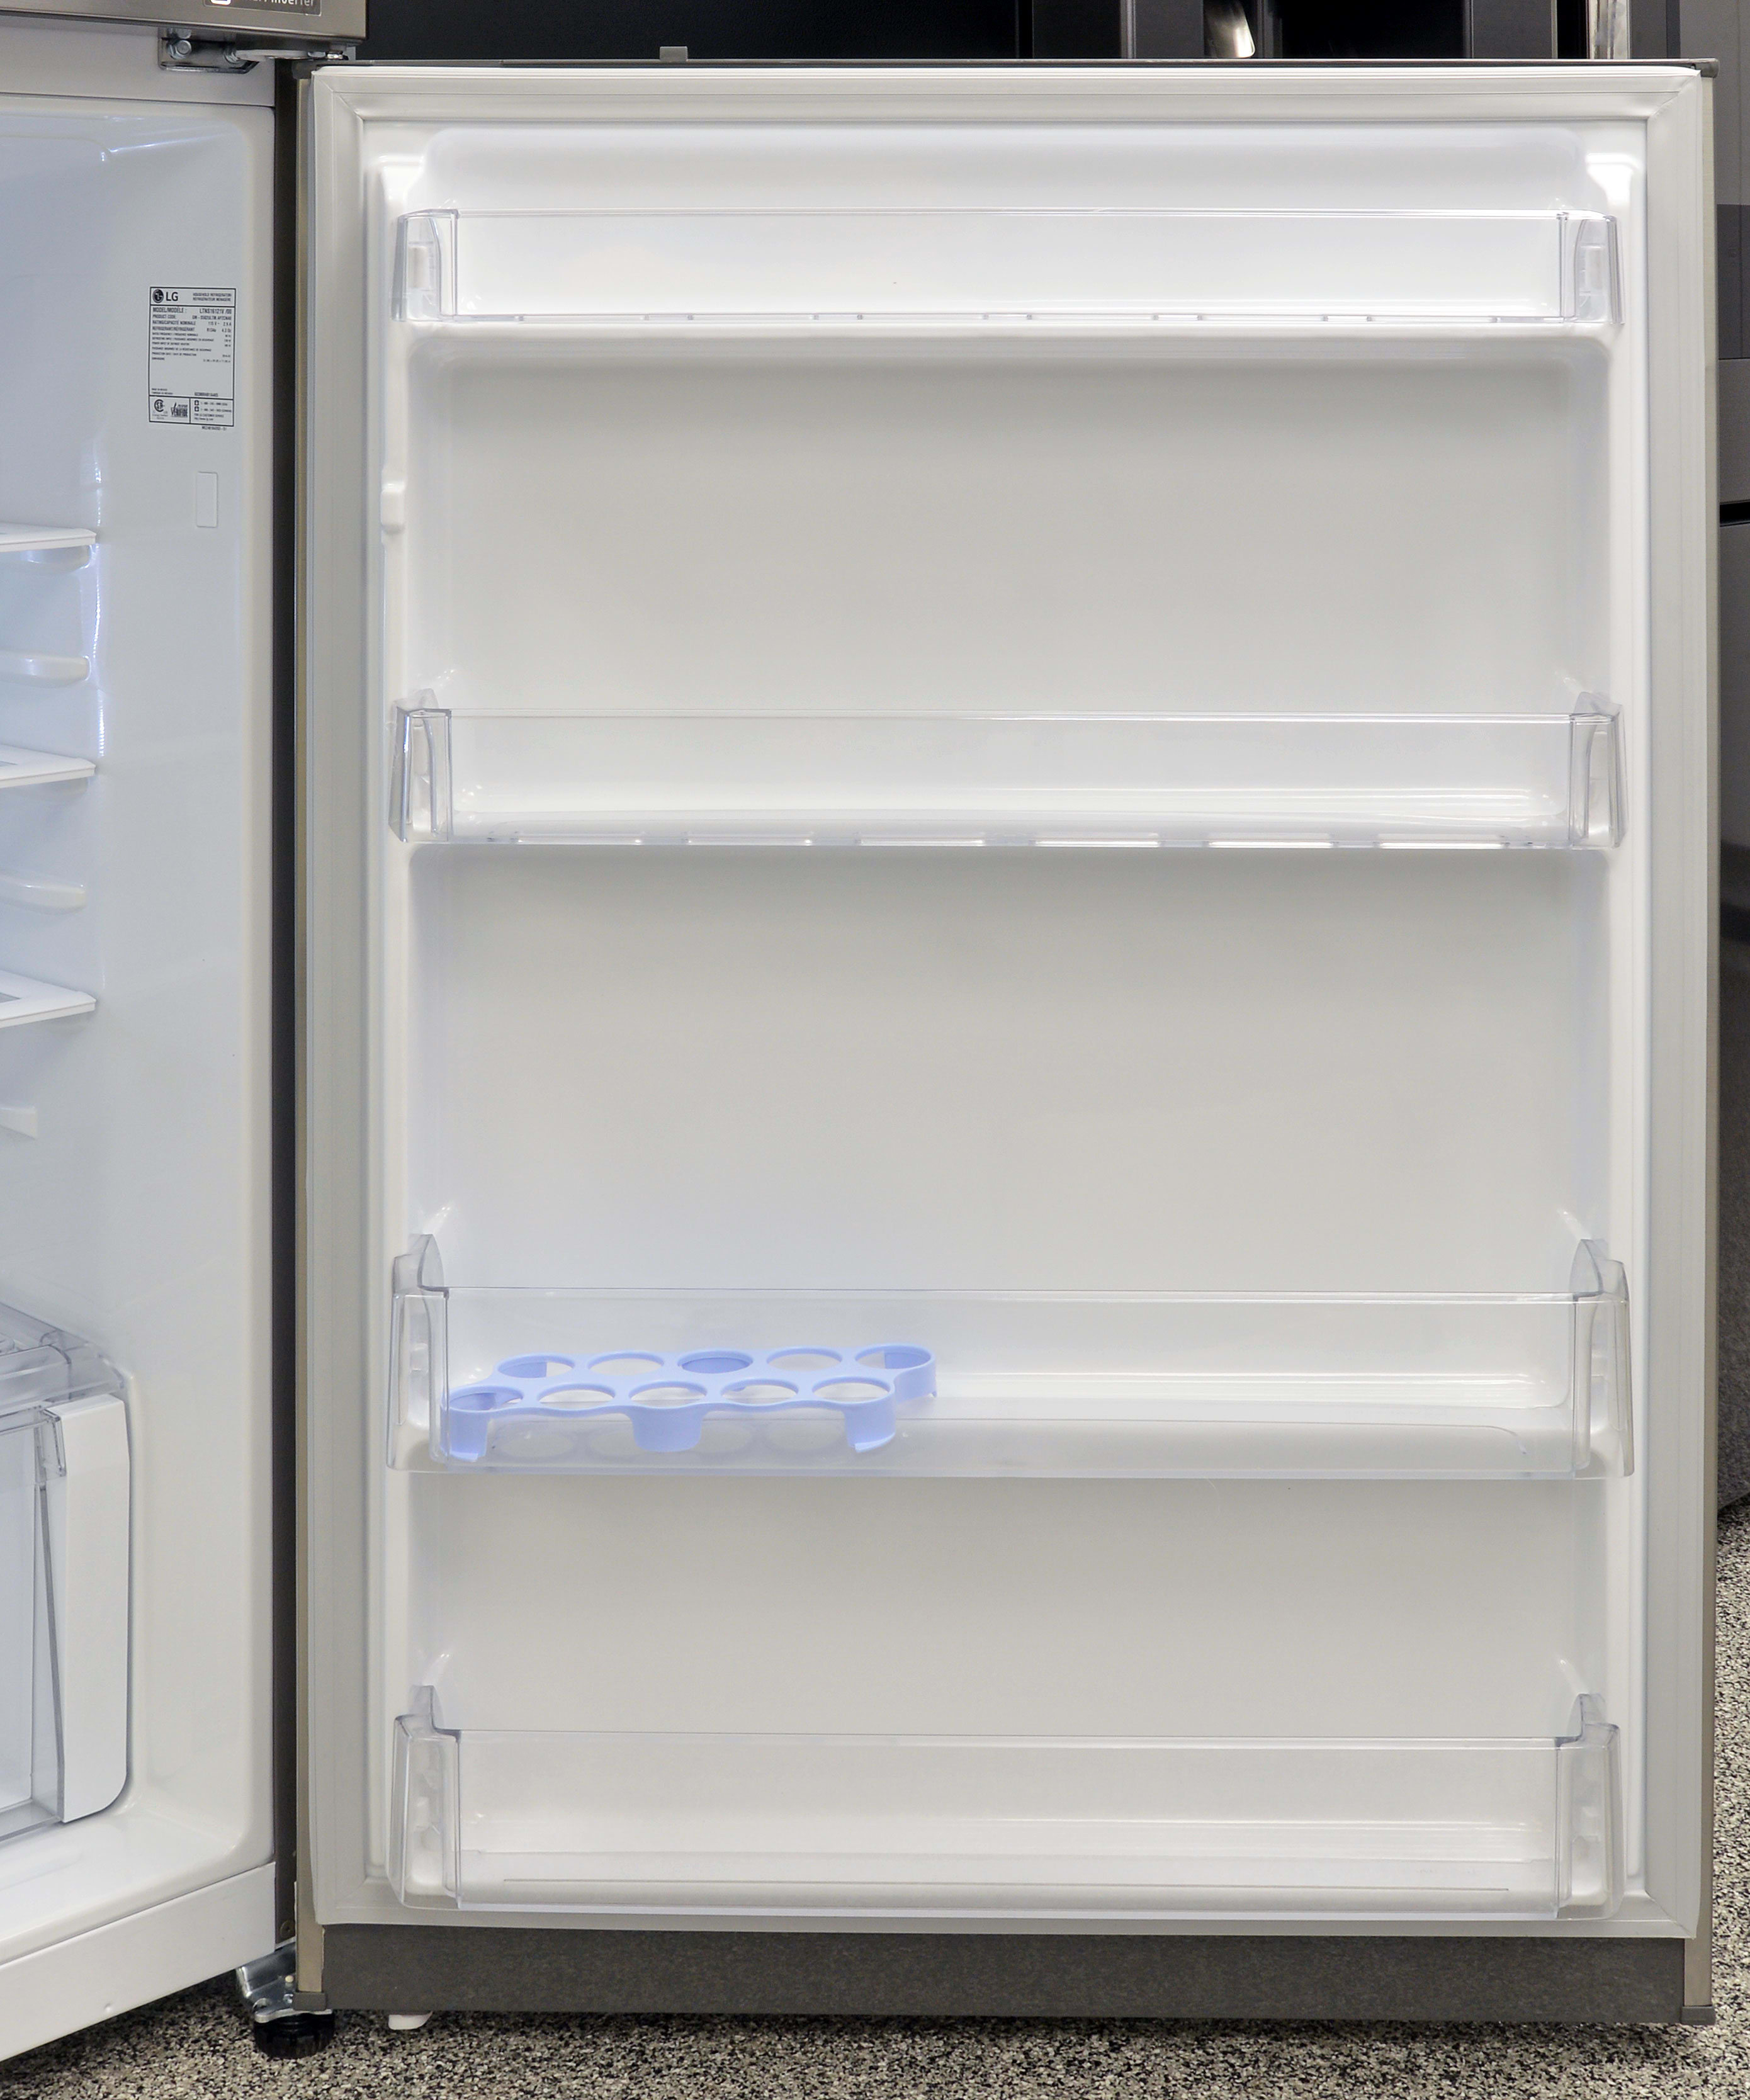 The LG LTNS16121V's door shelves can fit a two-liter bottle of soda, but are all too shallow to hold gallon jugs.